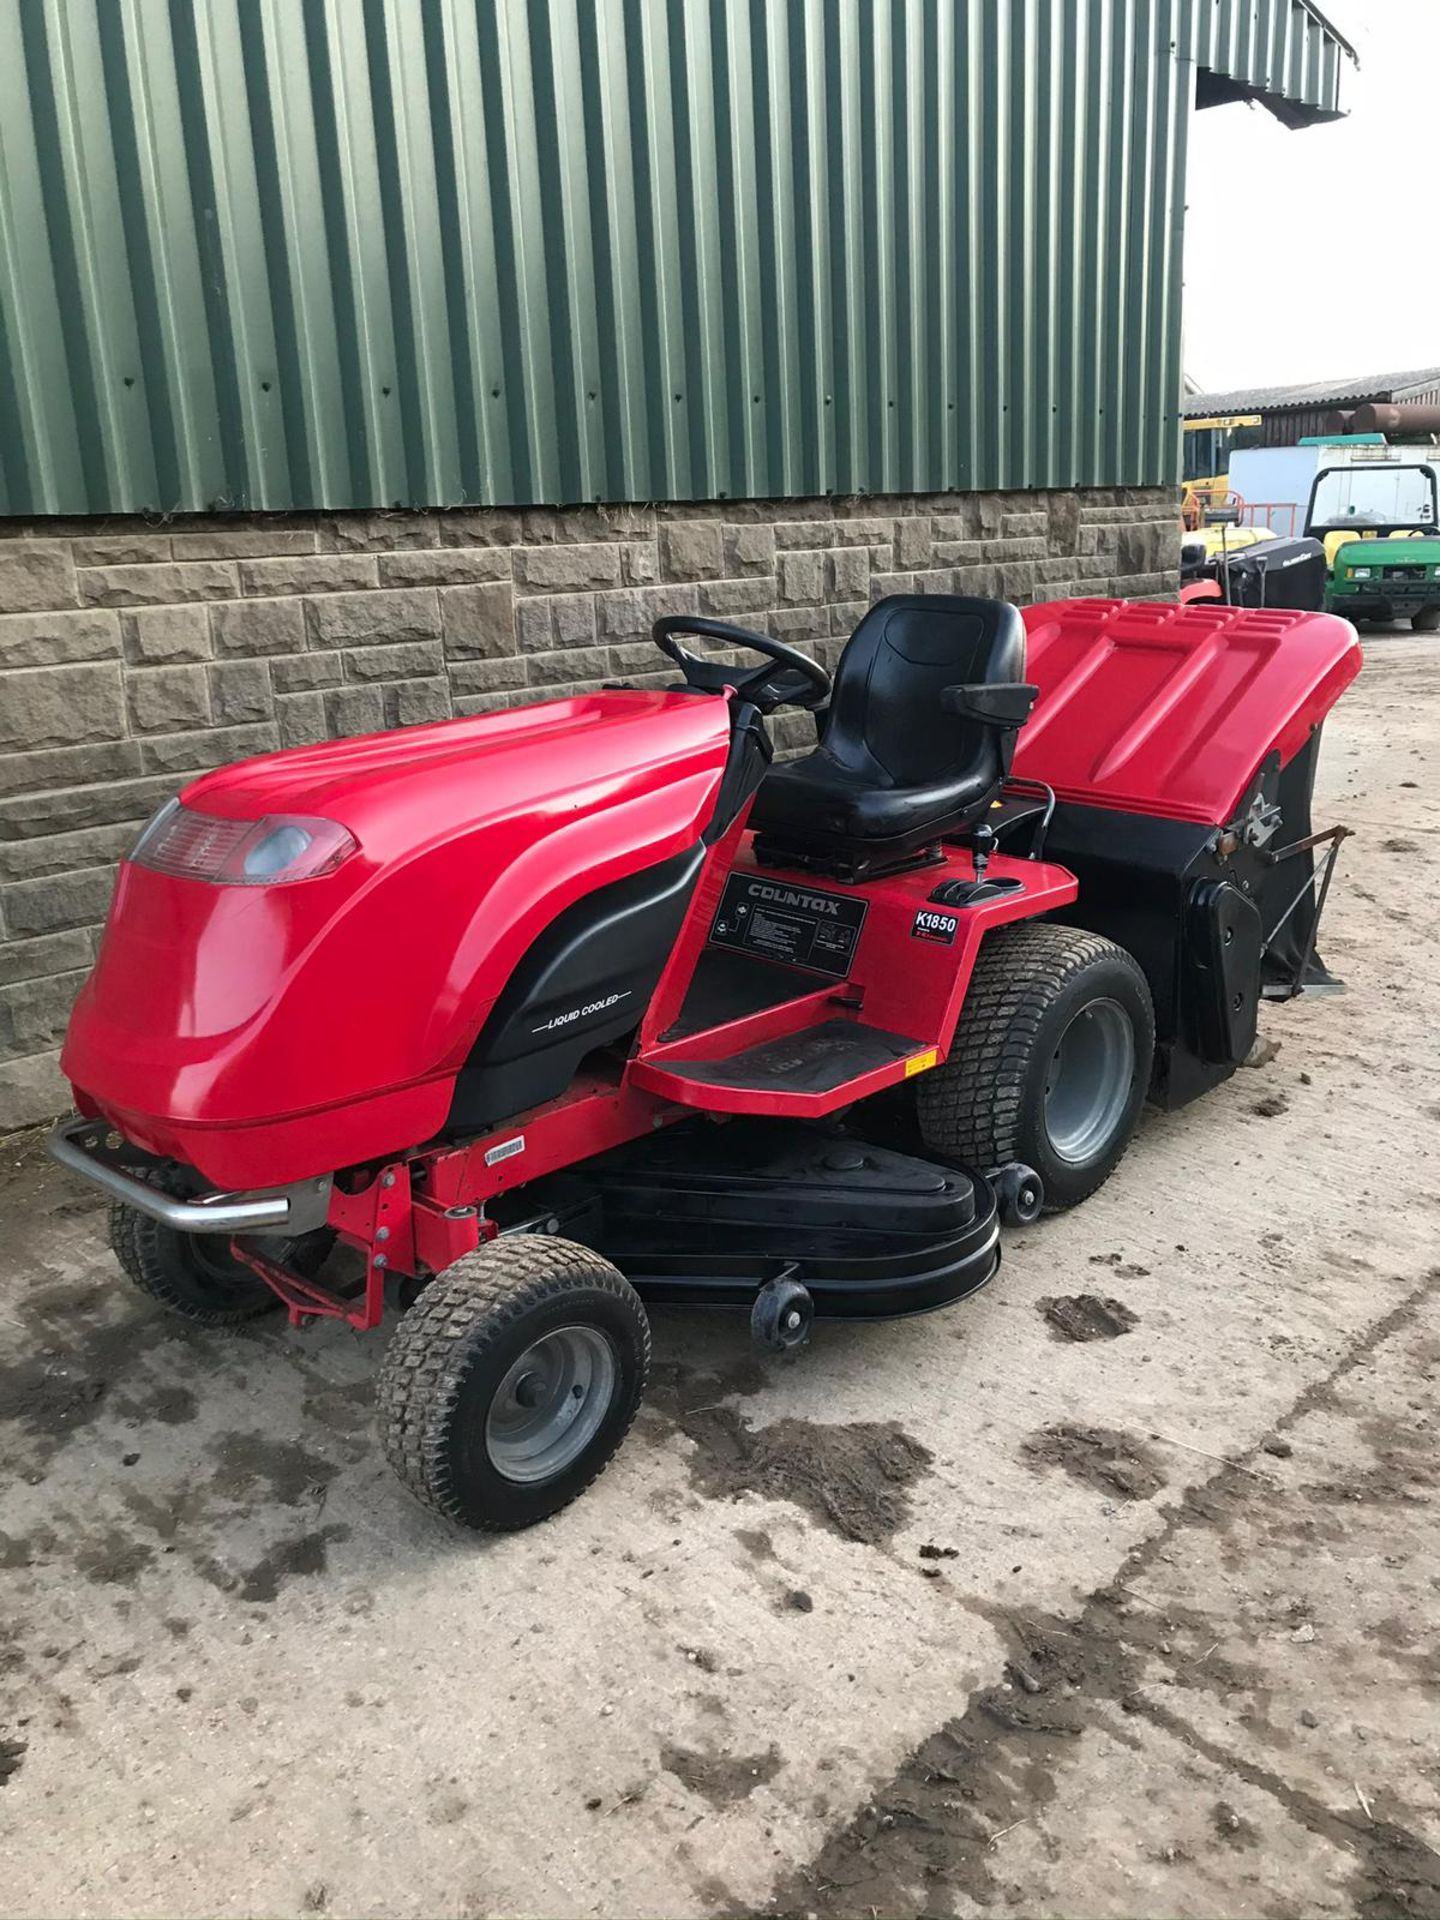 COUNTAX K1850 RIDE ON LAWN MOWER, RUNS, DRIVES AND CUTS, CLEAN MACHINE *NO VAT* - Image 3 of 5